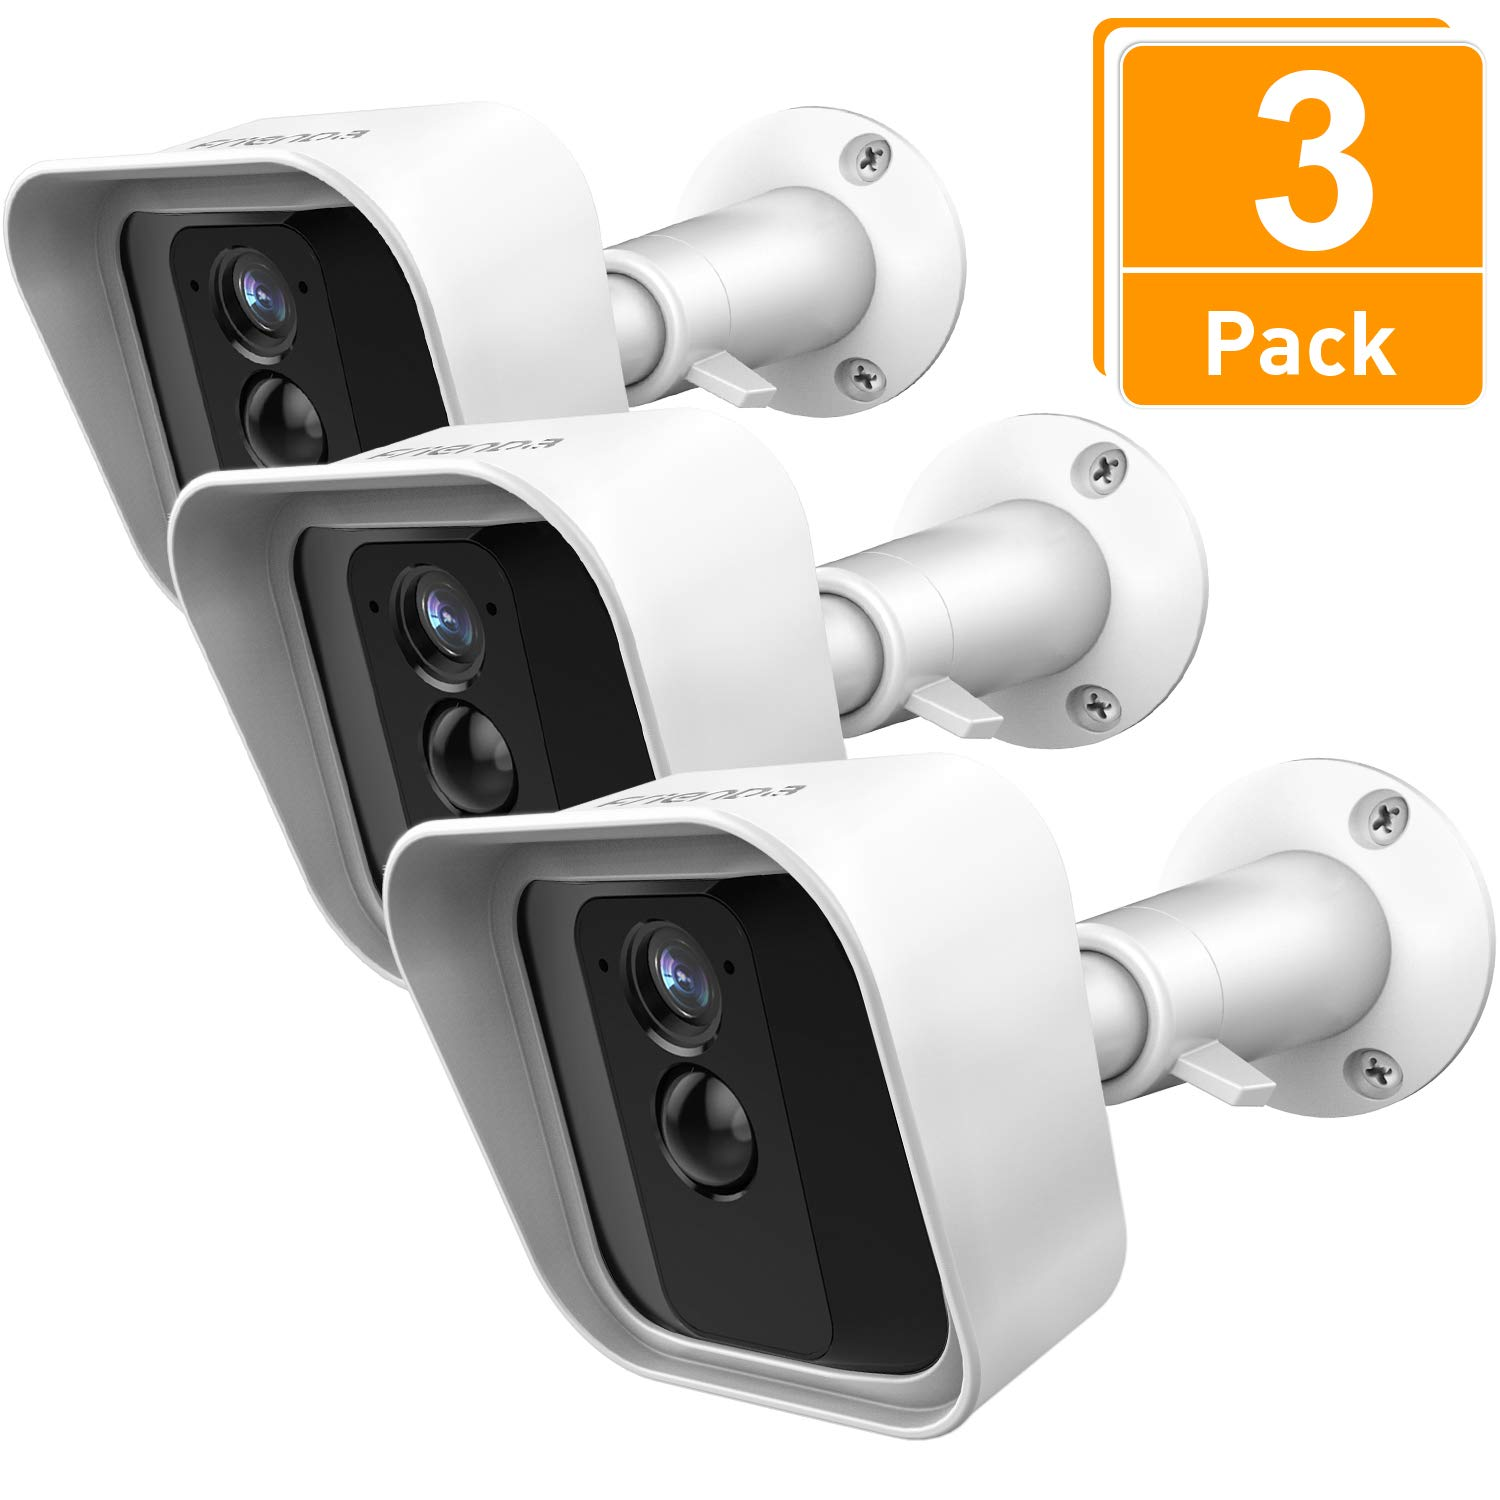 Frienda Silicone Protective Skin Cover and 360 Degree Adjustable Wall Mount Bracket Compatible with Blink XT Indoor/Outdoor Security Camera, 3 Sets (White)